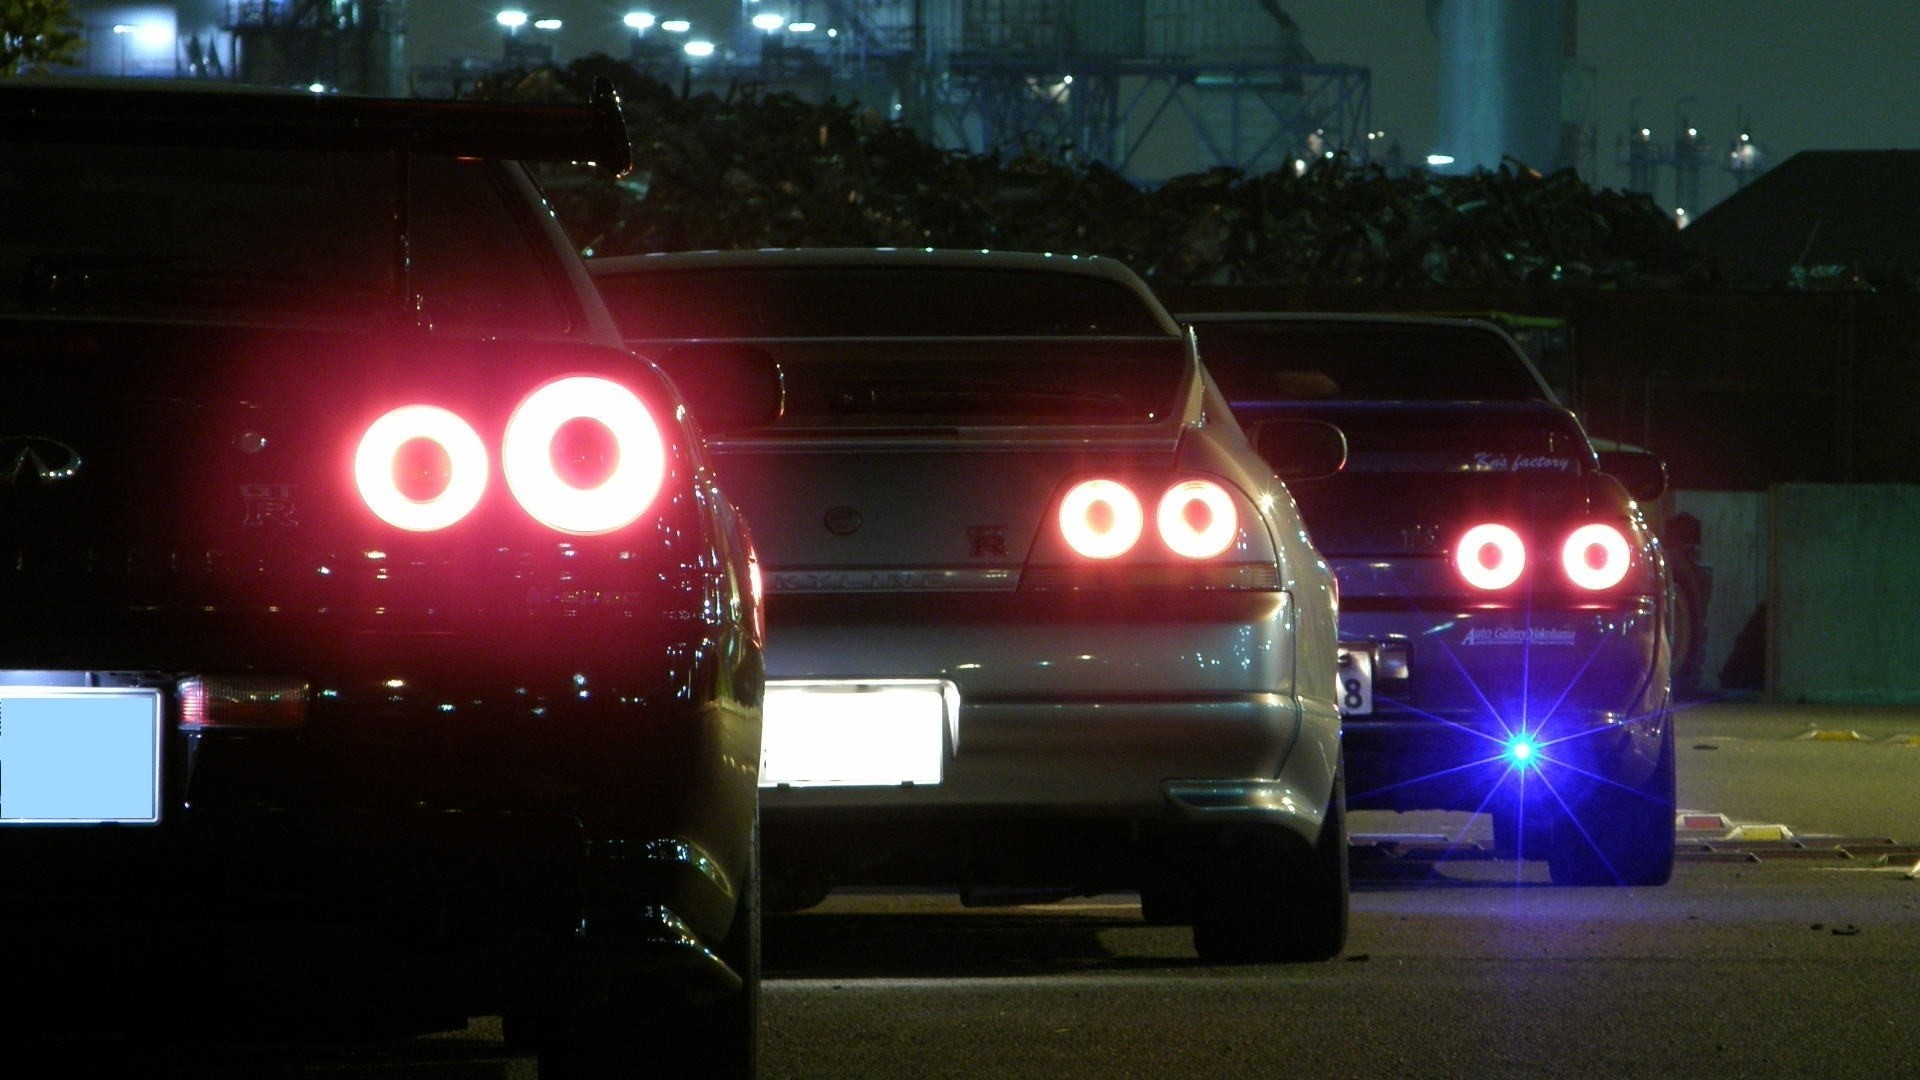 1920x1080 cars backview vehicles nissan skyline r32 gtr jdm nissan skyline r33 gtr   tuning wallpaper